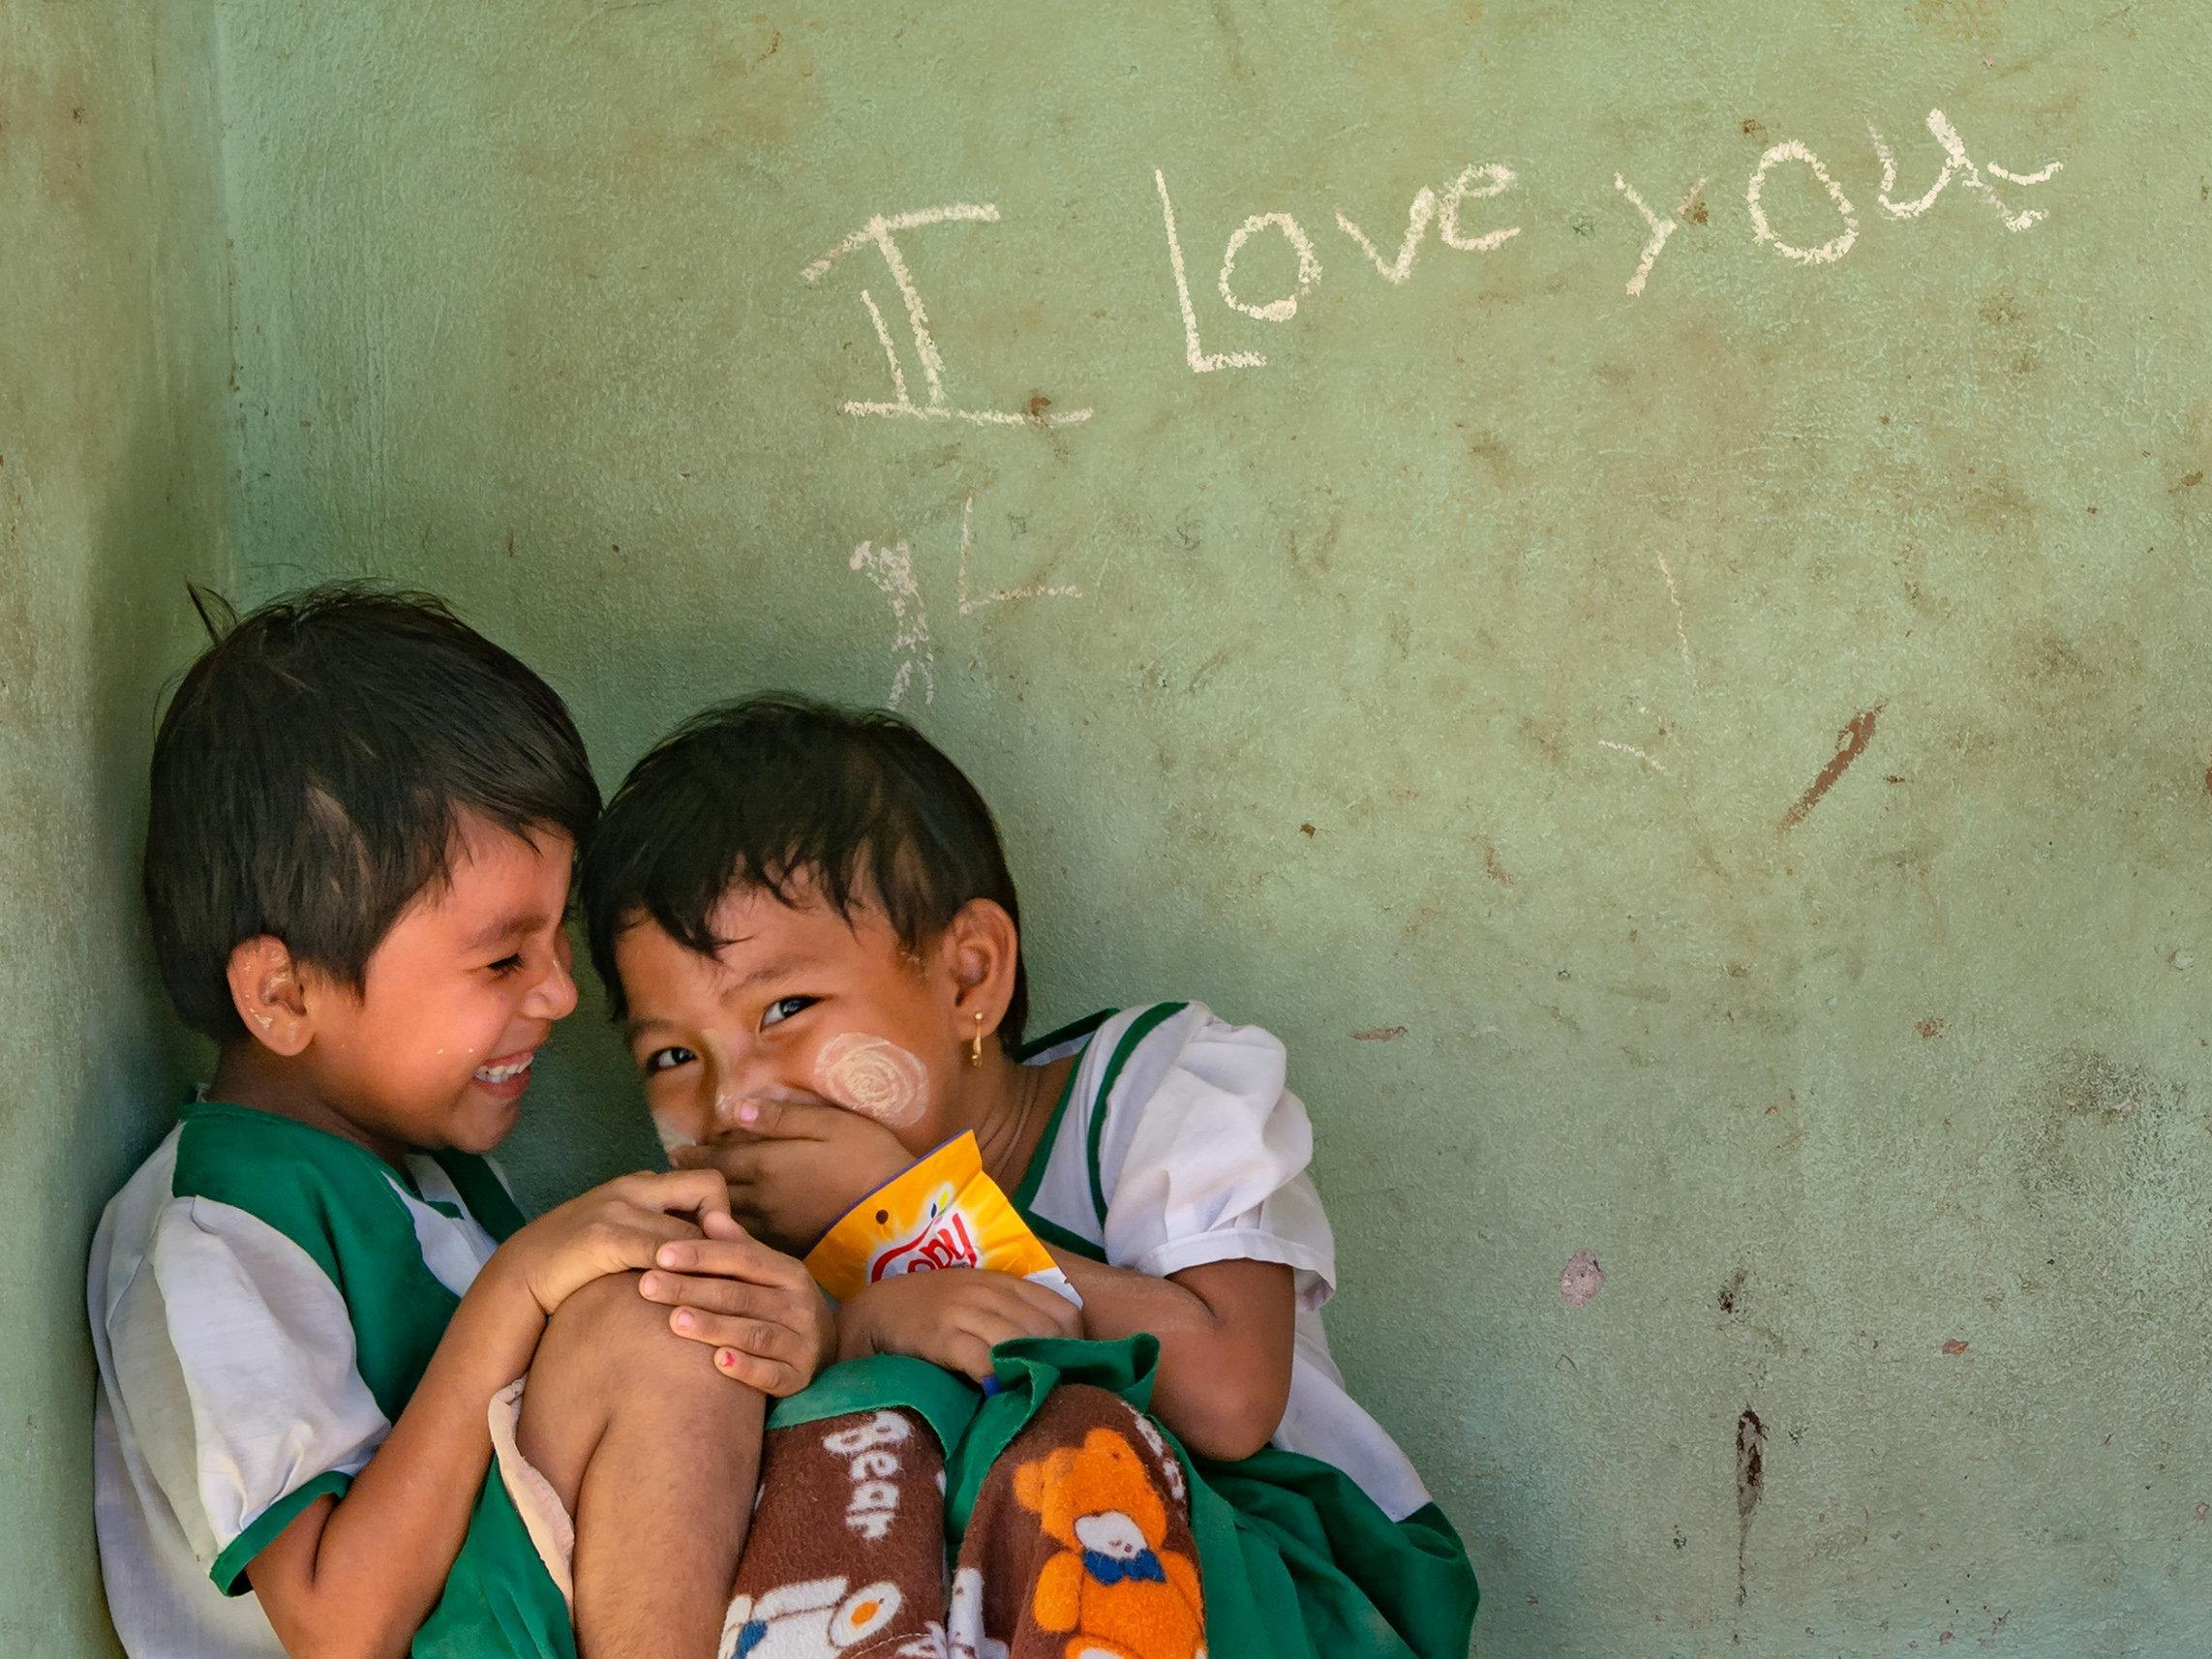 Photographers capture 'essence of love' between parents, children and animals for Valentine's Day